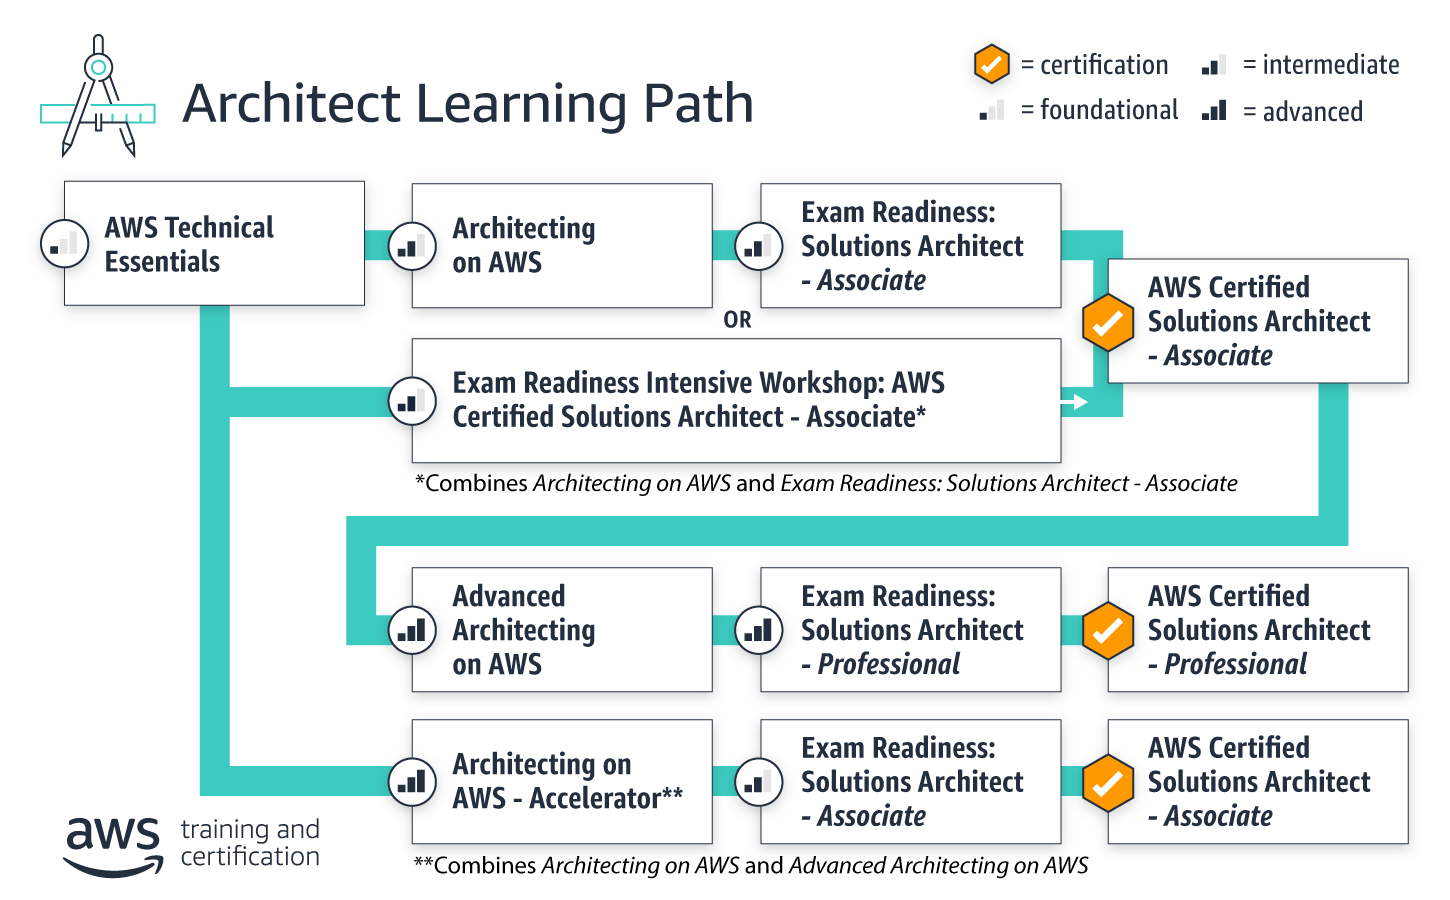 LearningPath-Architect_May2020